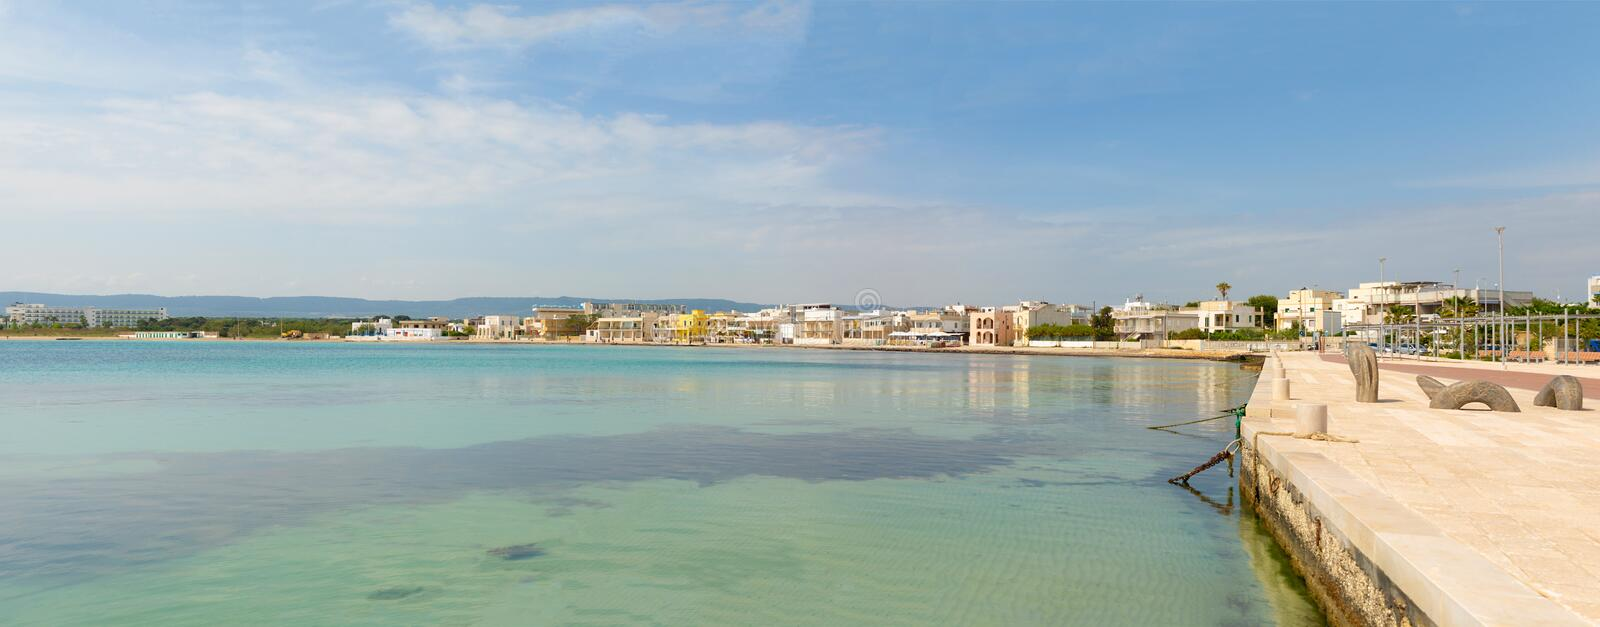 Panorama of Port with cityview of Torre Canne, Fasano in south Italy royalty free stock images